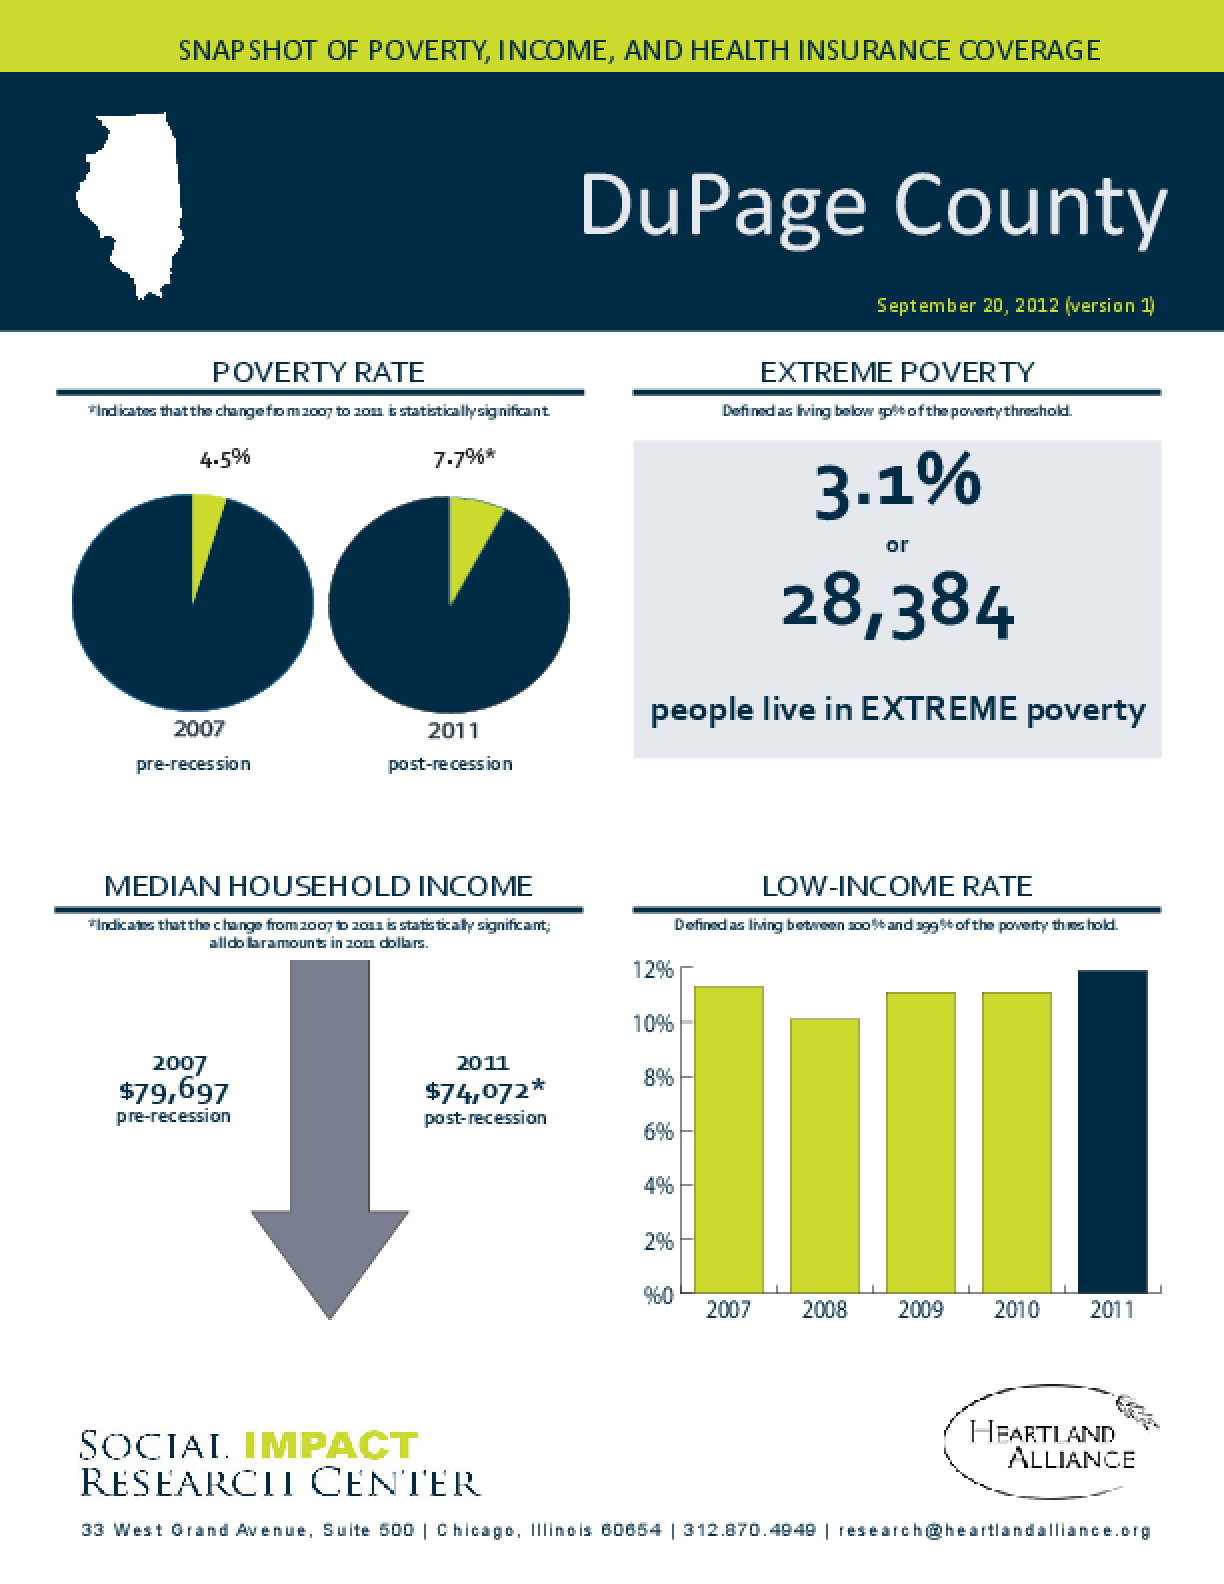 DuPage County: Snapshot of Poverty, Income, and Health Insurance Coverage - 2011